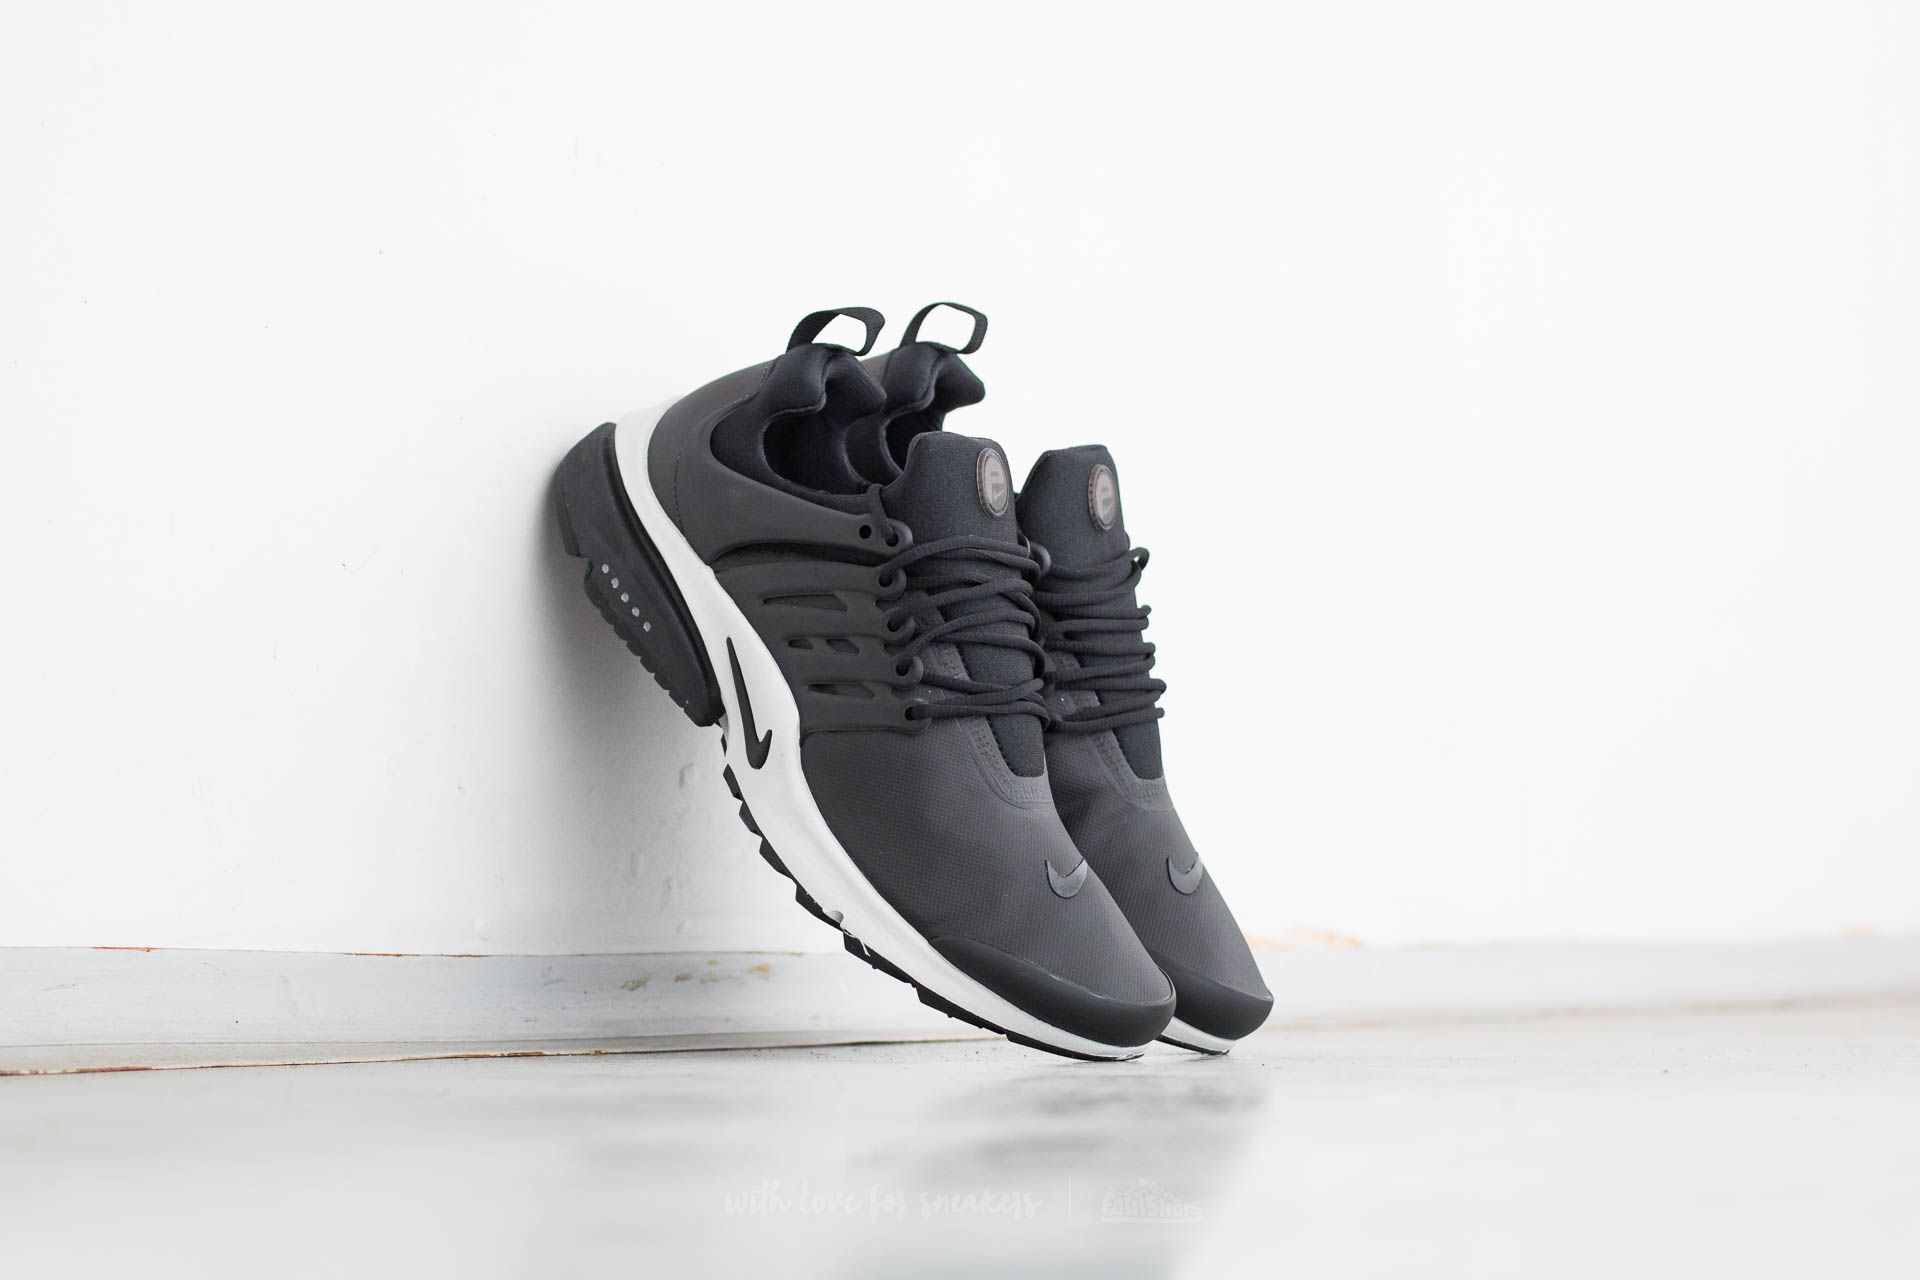 premium selection 5b6b3 ad604 Nike Air Presto Low Utility